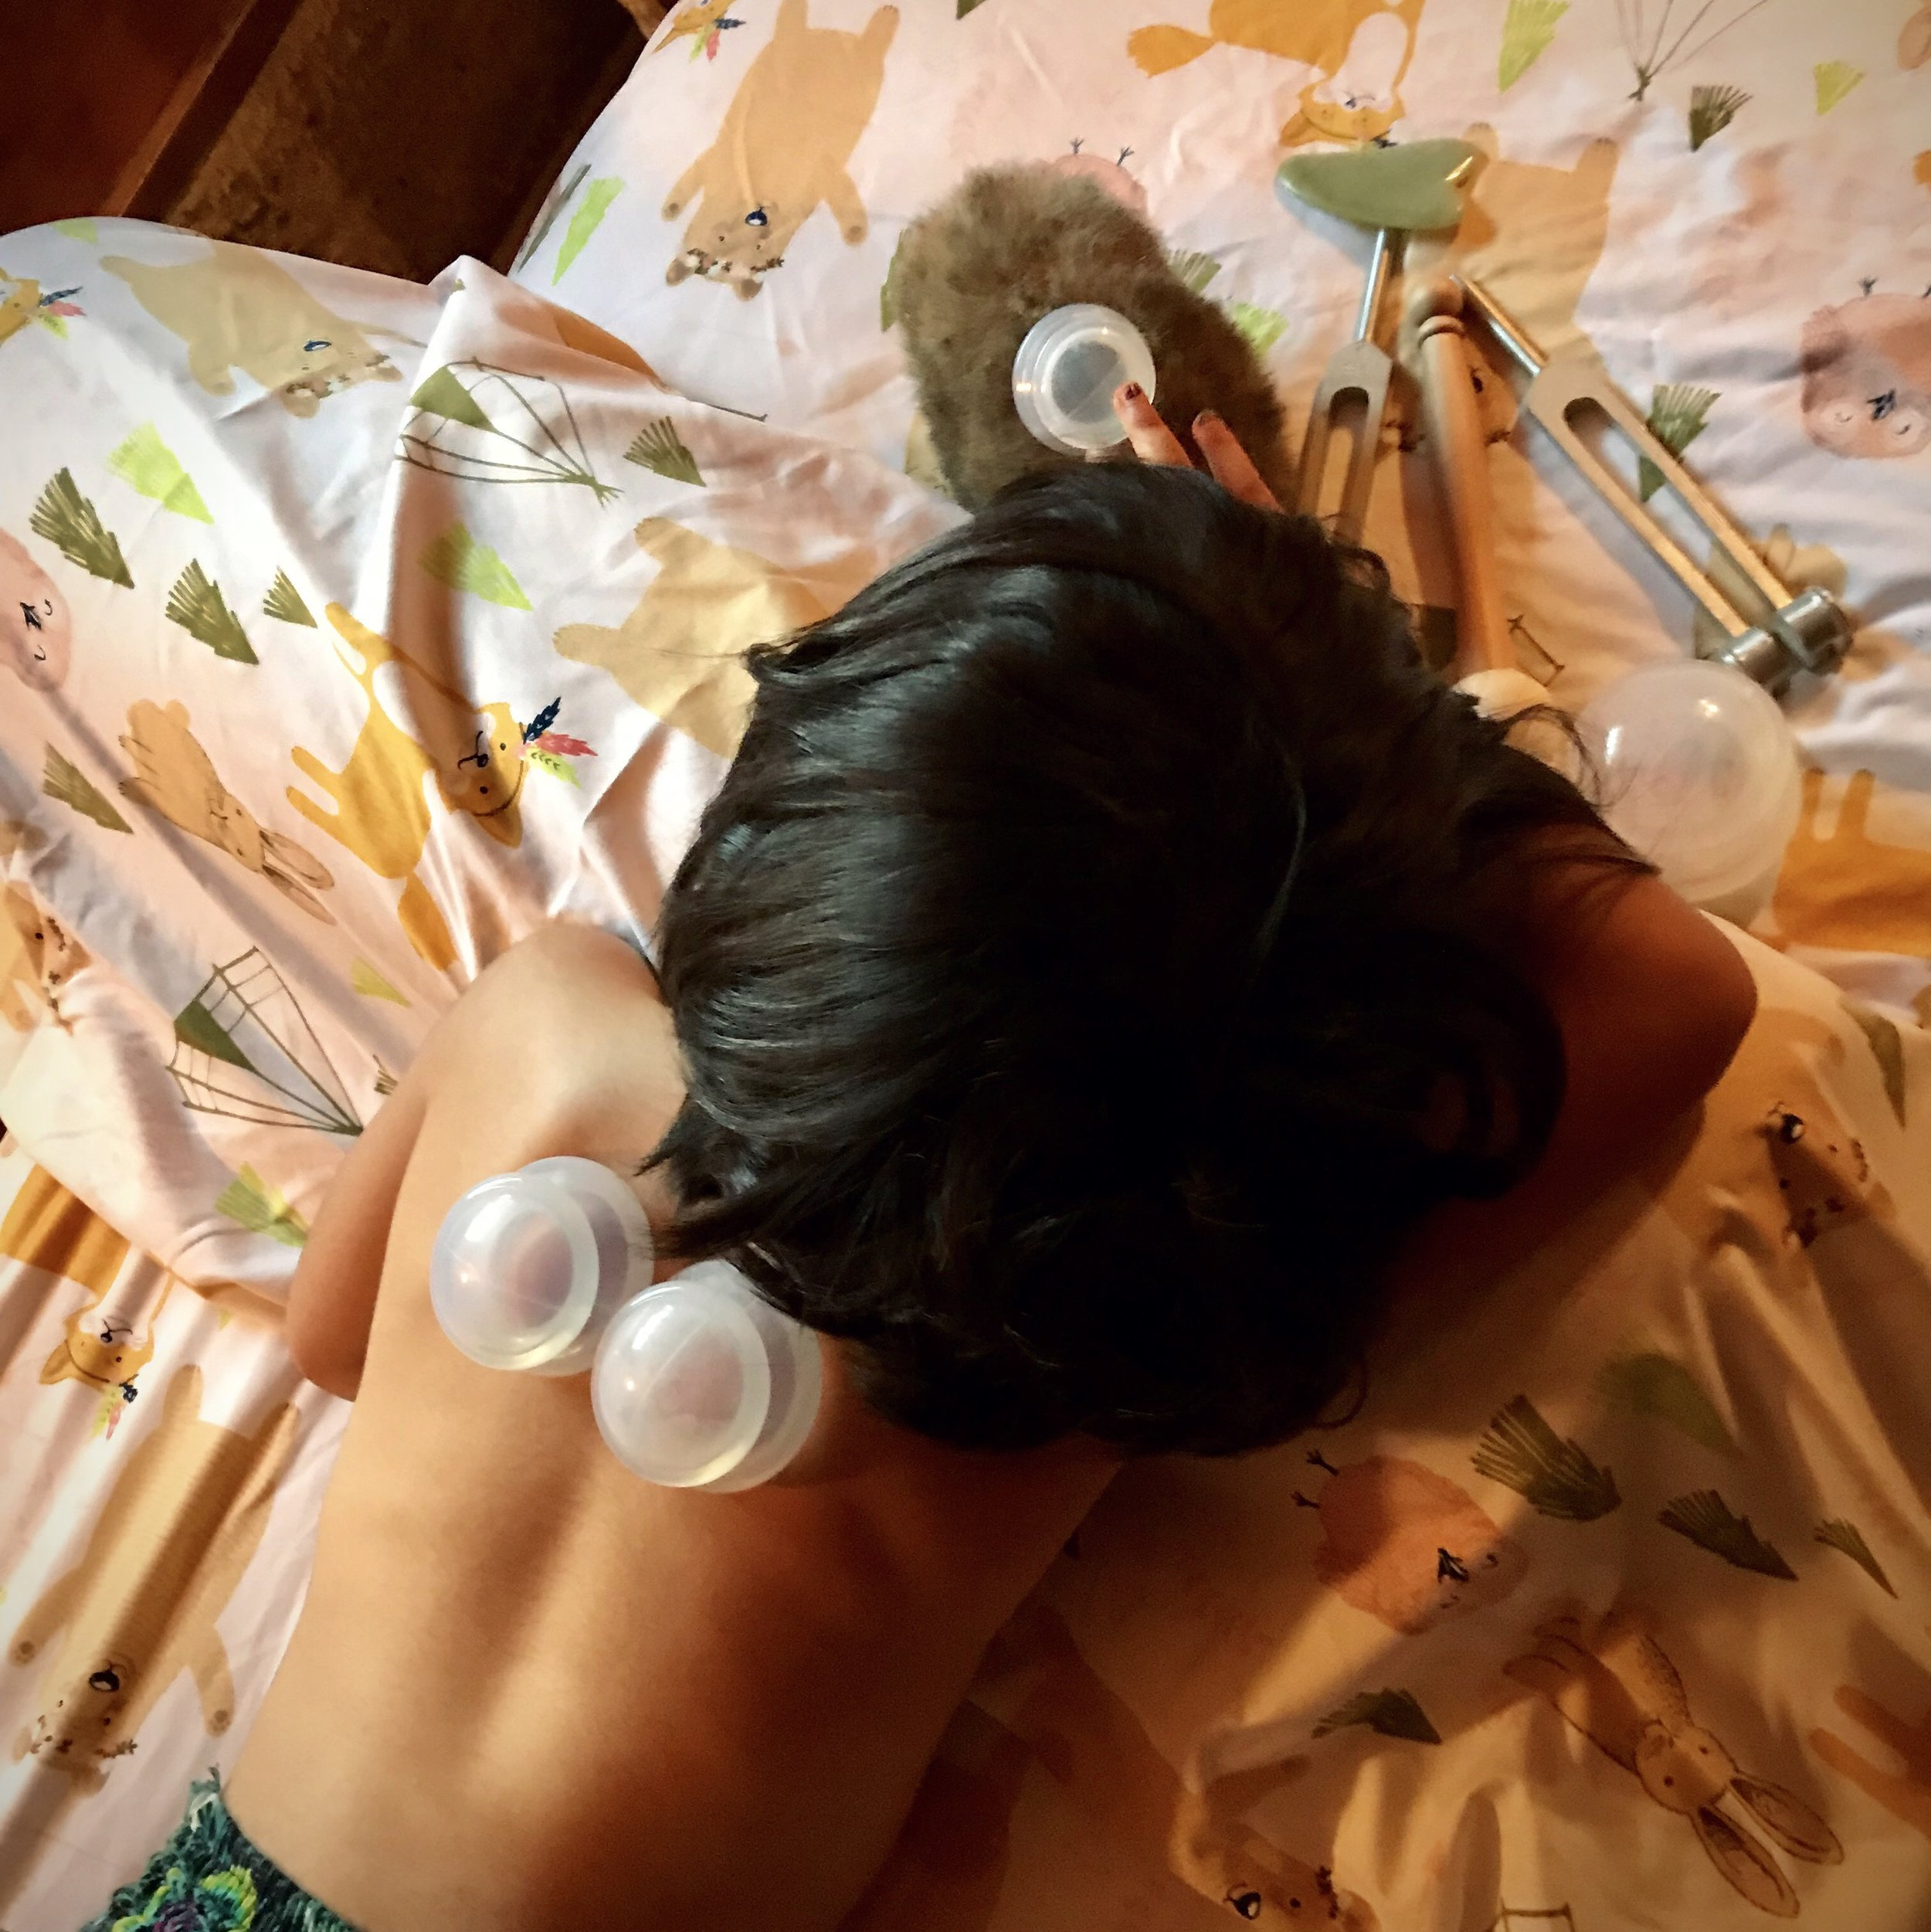 CUPPING FOR COUGH